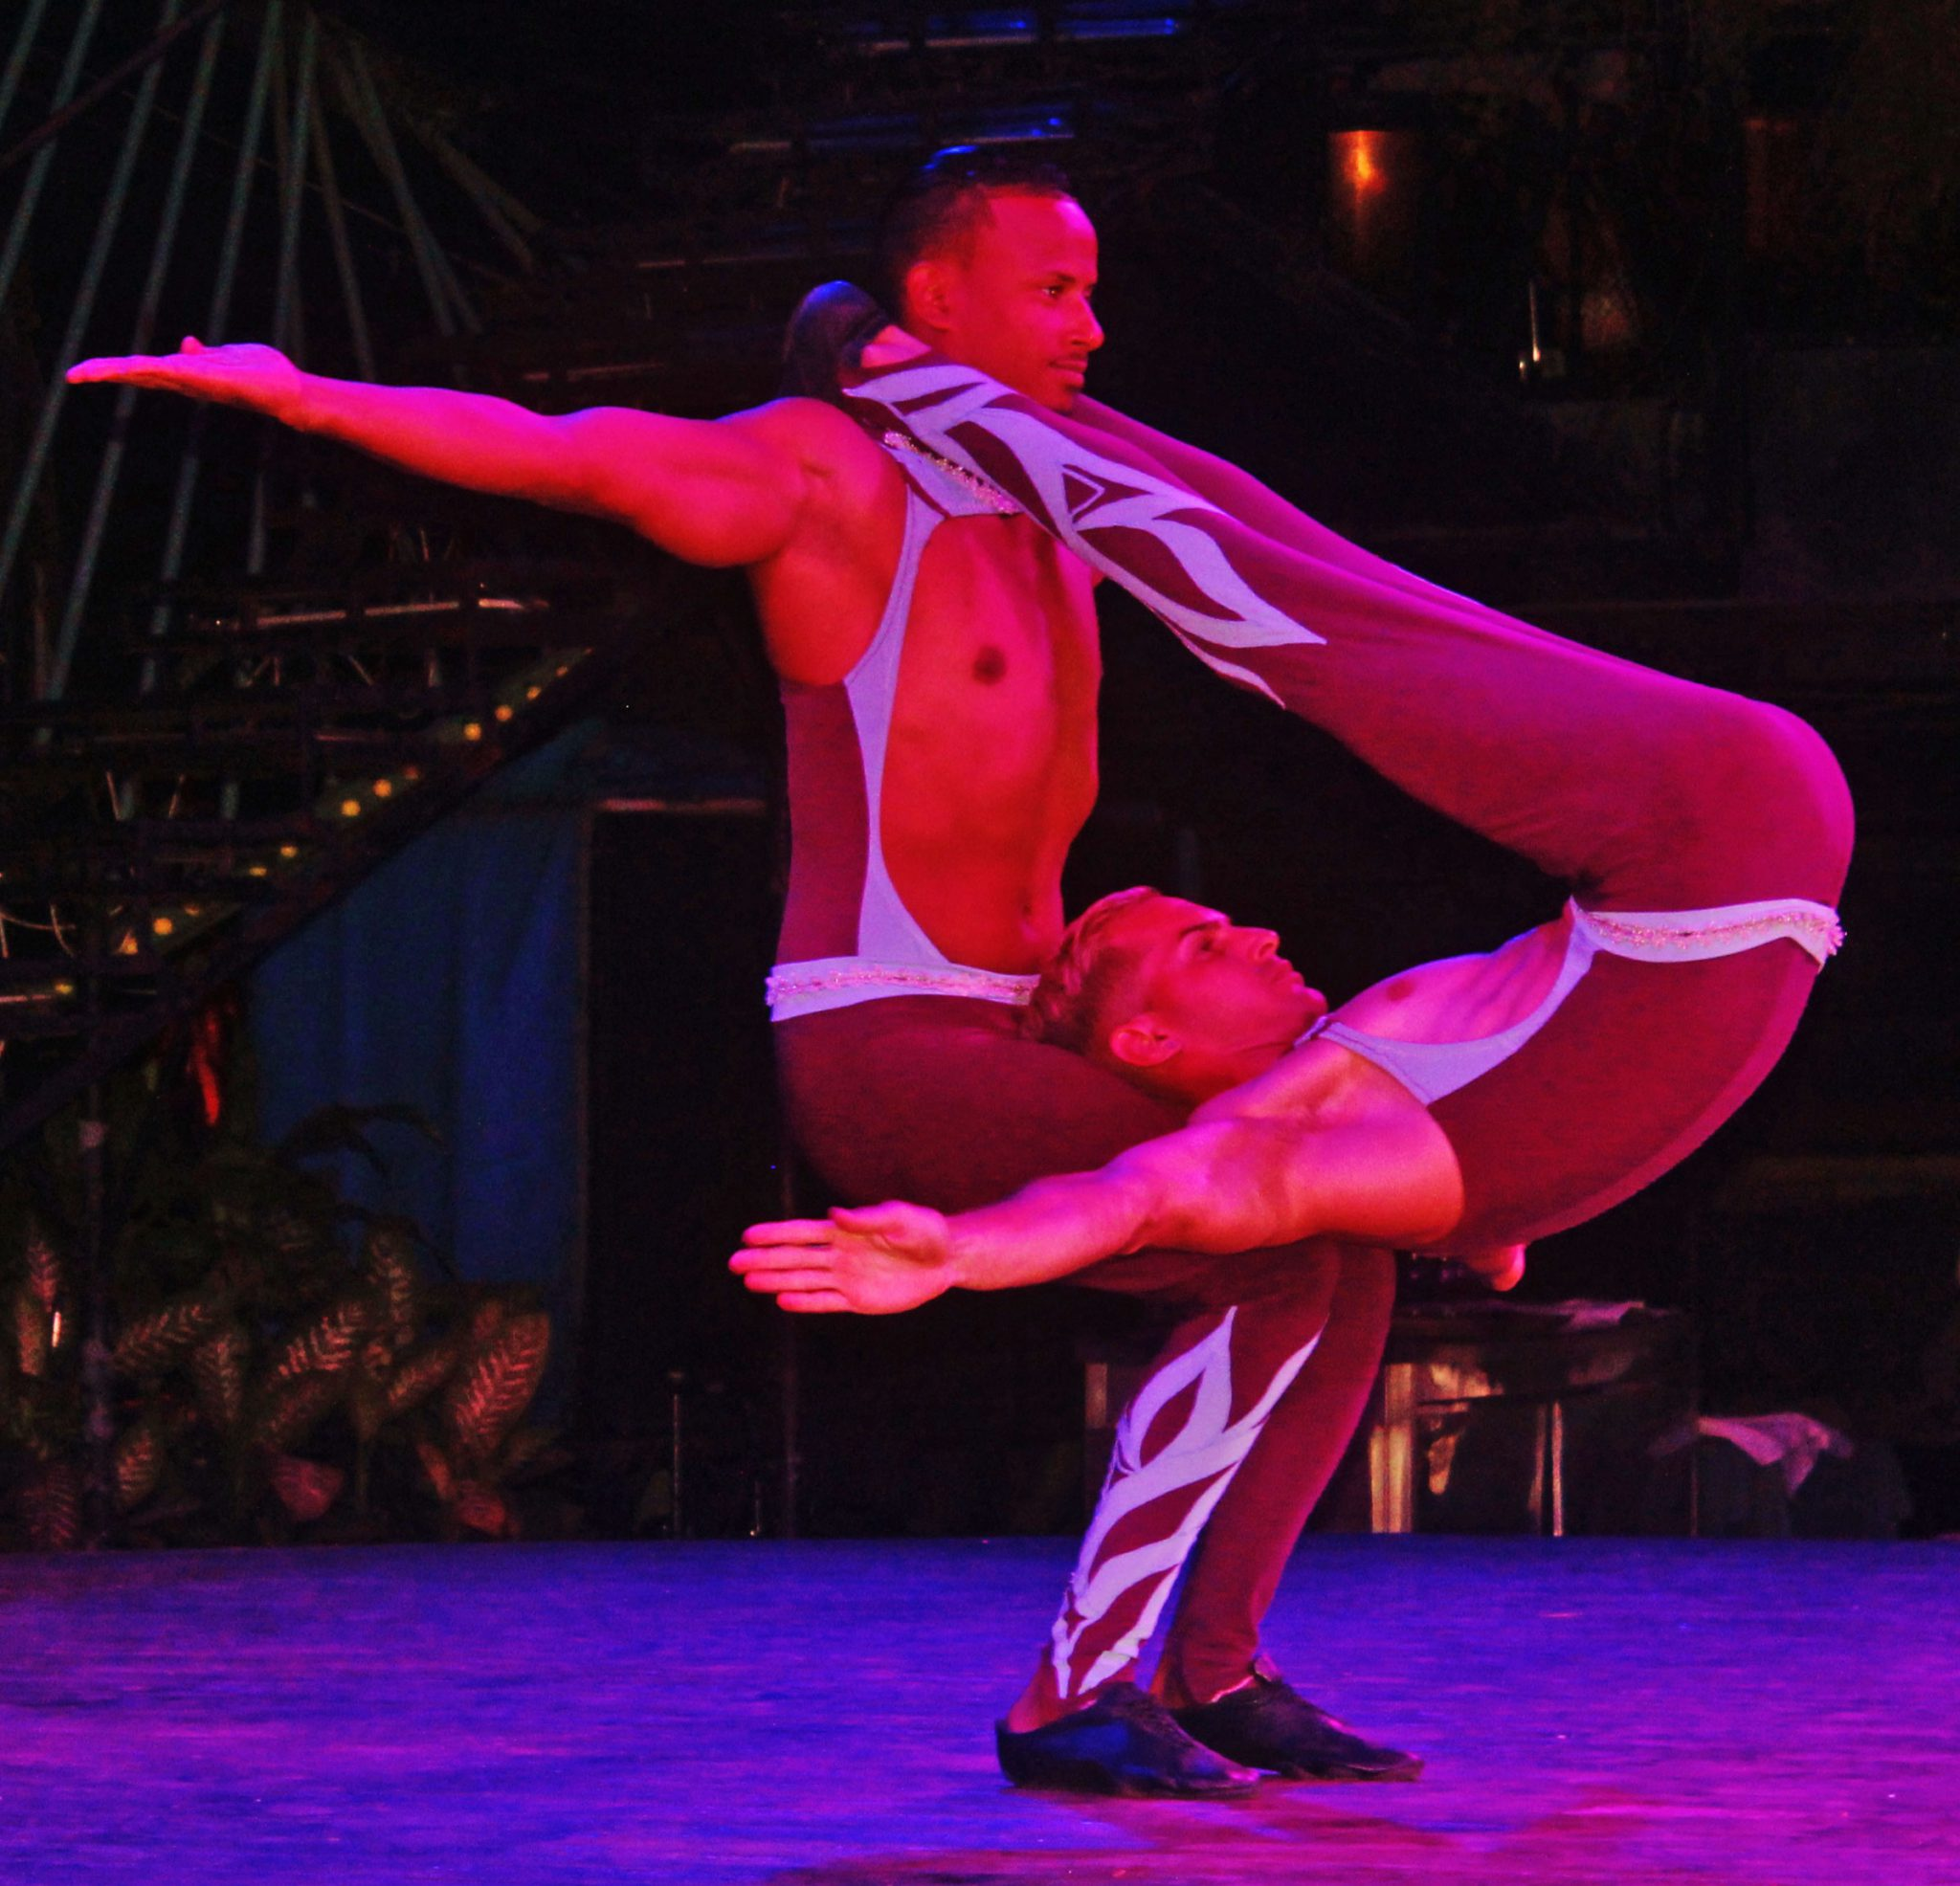 The power and grace of these two acrobats sent a hush over the Tropicana in an unexpected display of near Olympic quality strength and endurance.